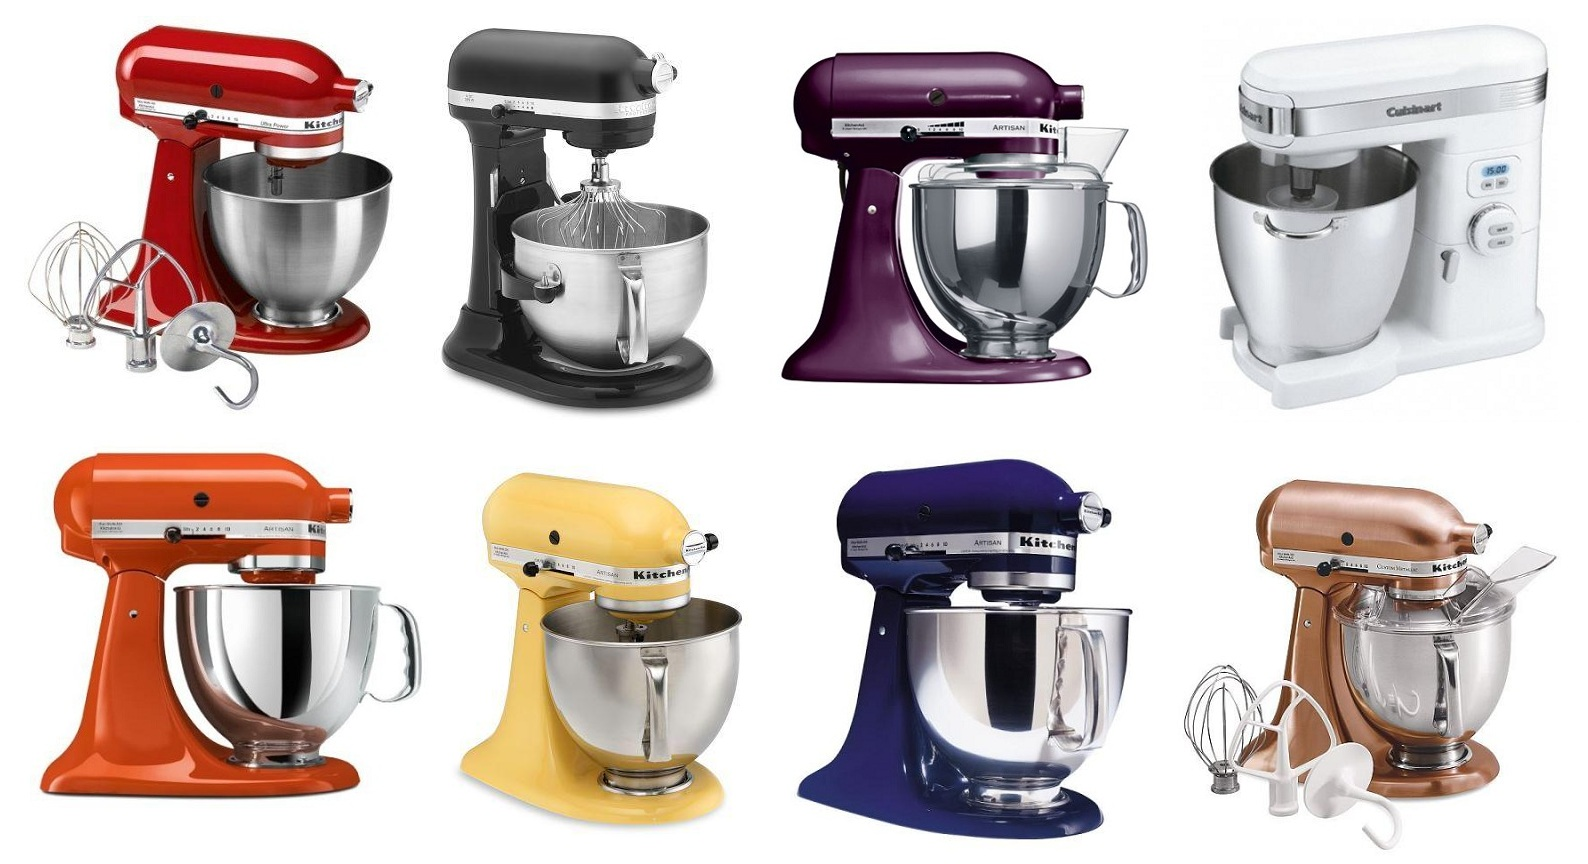 Designer Kitchen Aid Mixers 22 Of The Most Shoplifted Items In America